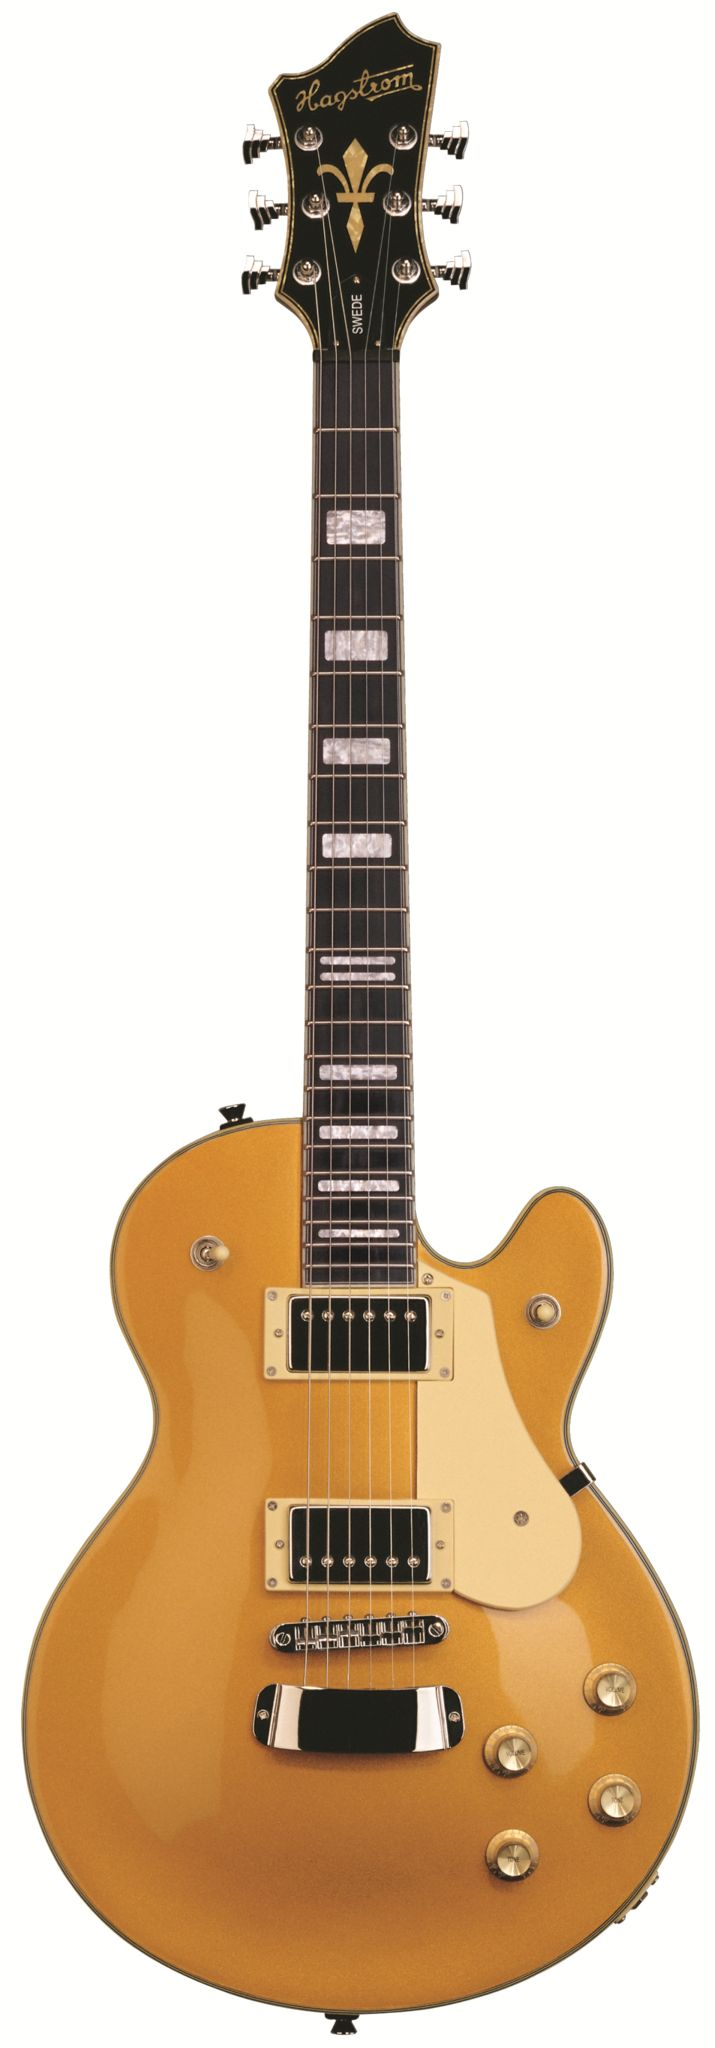 The Swede Model is a Hagtrom Classic with Fat tone; powerful attack; and two additional tone filters for a wide range of tones. Specifications - Body: Mahogany Body with Mahogany Top - Neck: Mahogany;